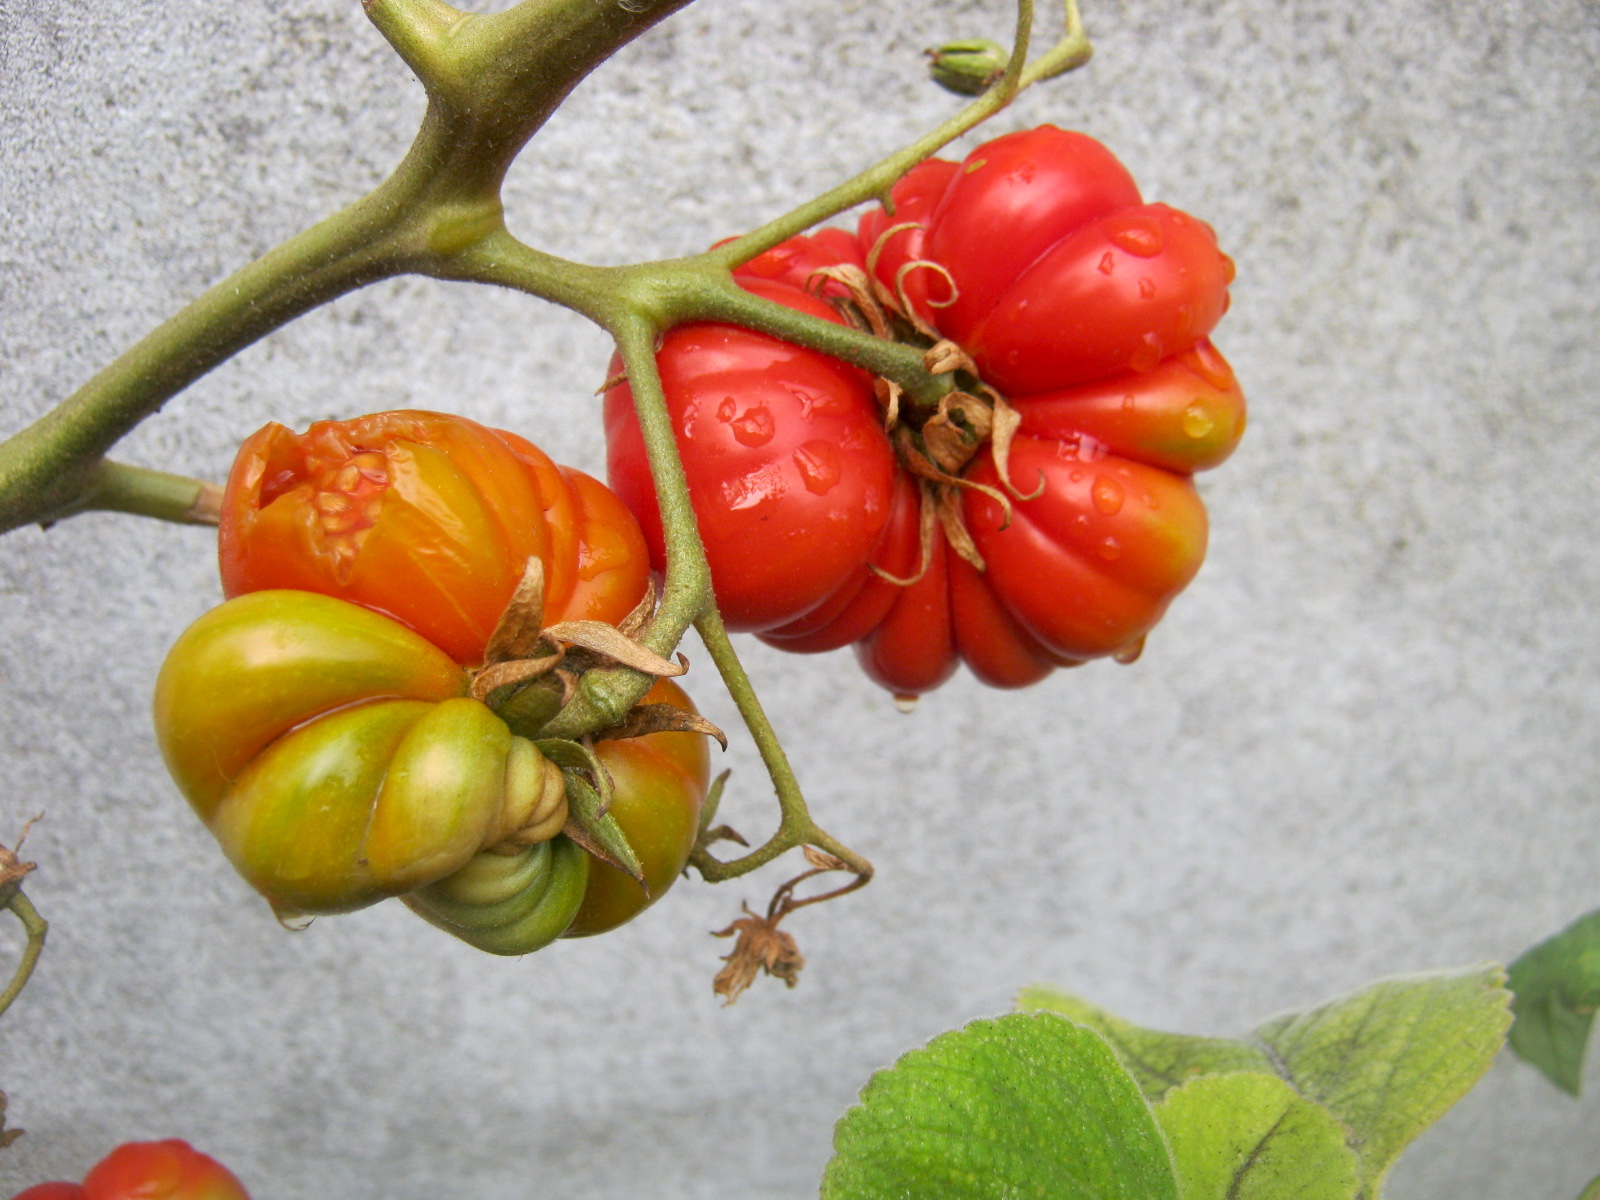 Genovese tomatoes grow big and are full of flavor.